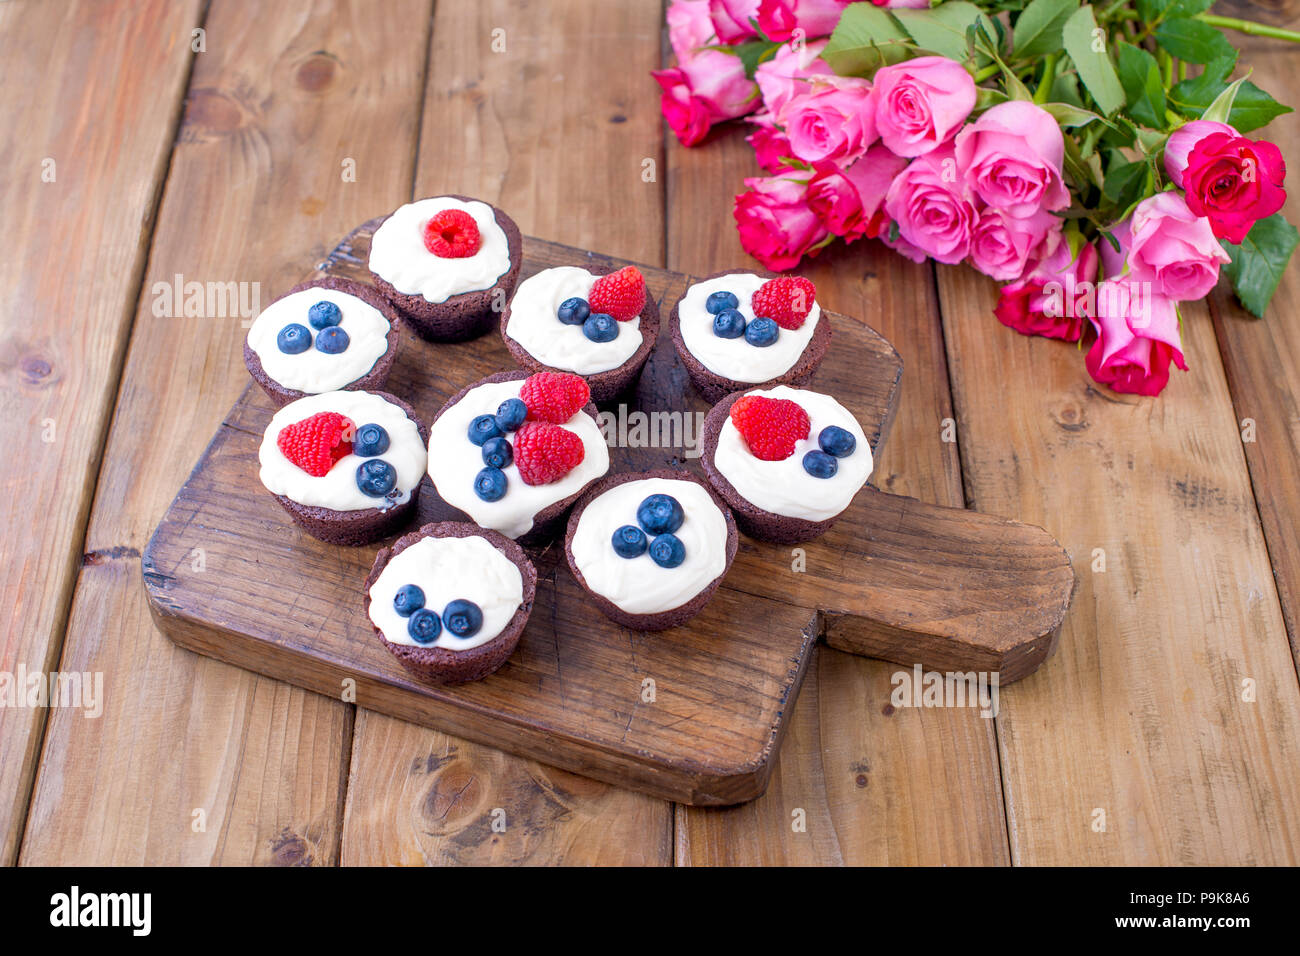 Flower bouquet cake mothers day stock photos flower bouquet cake chocolate muffins with raspberries and blueberries and white cheese cream on a brown wooden izmirmasajfo